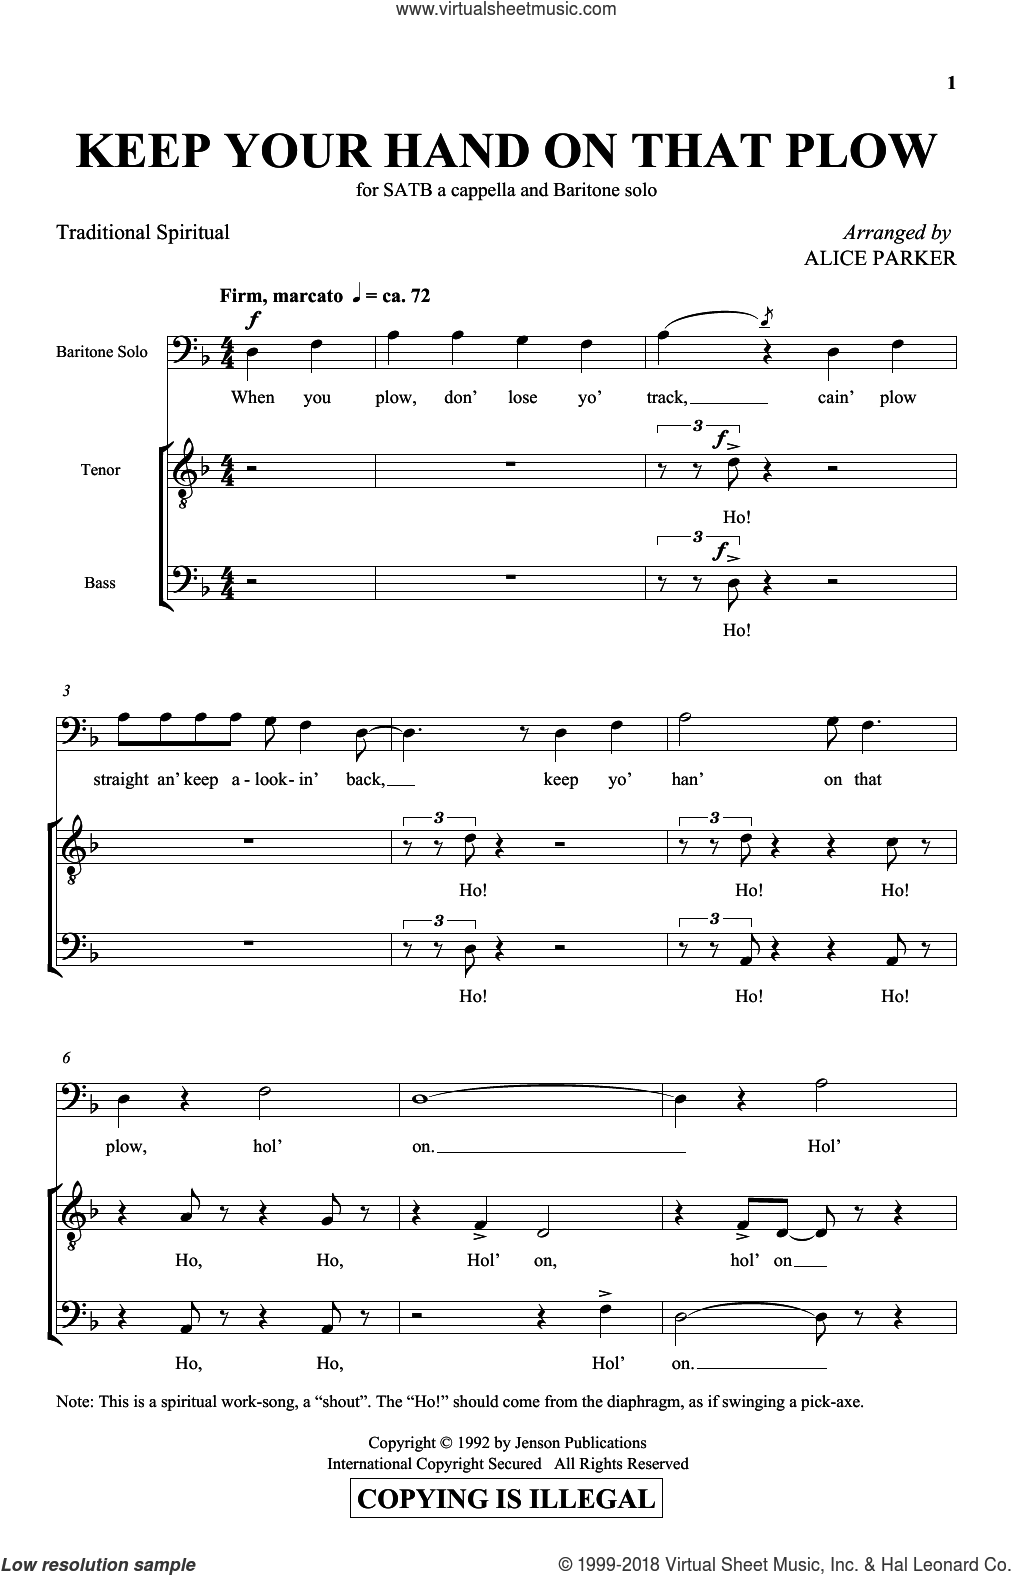 Keep Your Hand On That Plow sheet music for choir (SATB: soprano, alto, tenor, bass) by Alice Parker and Miscellaneous, intermediate. Score Image Preview.